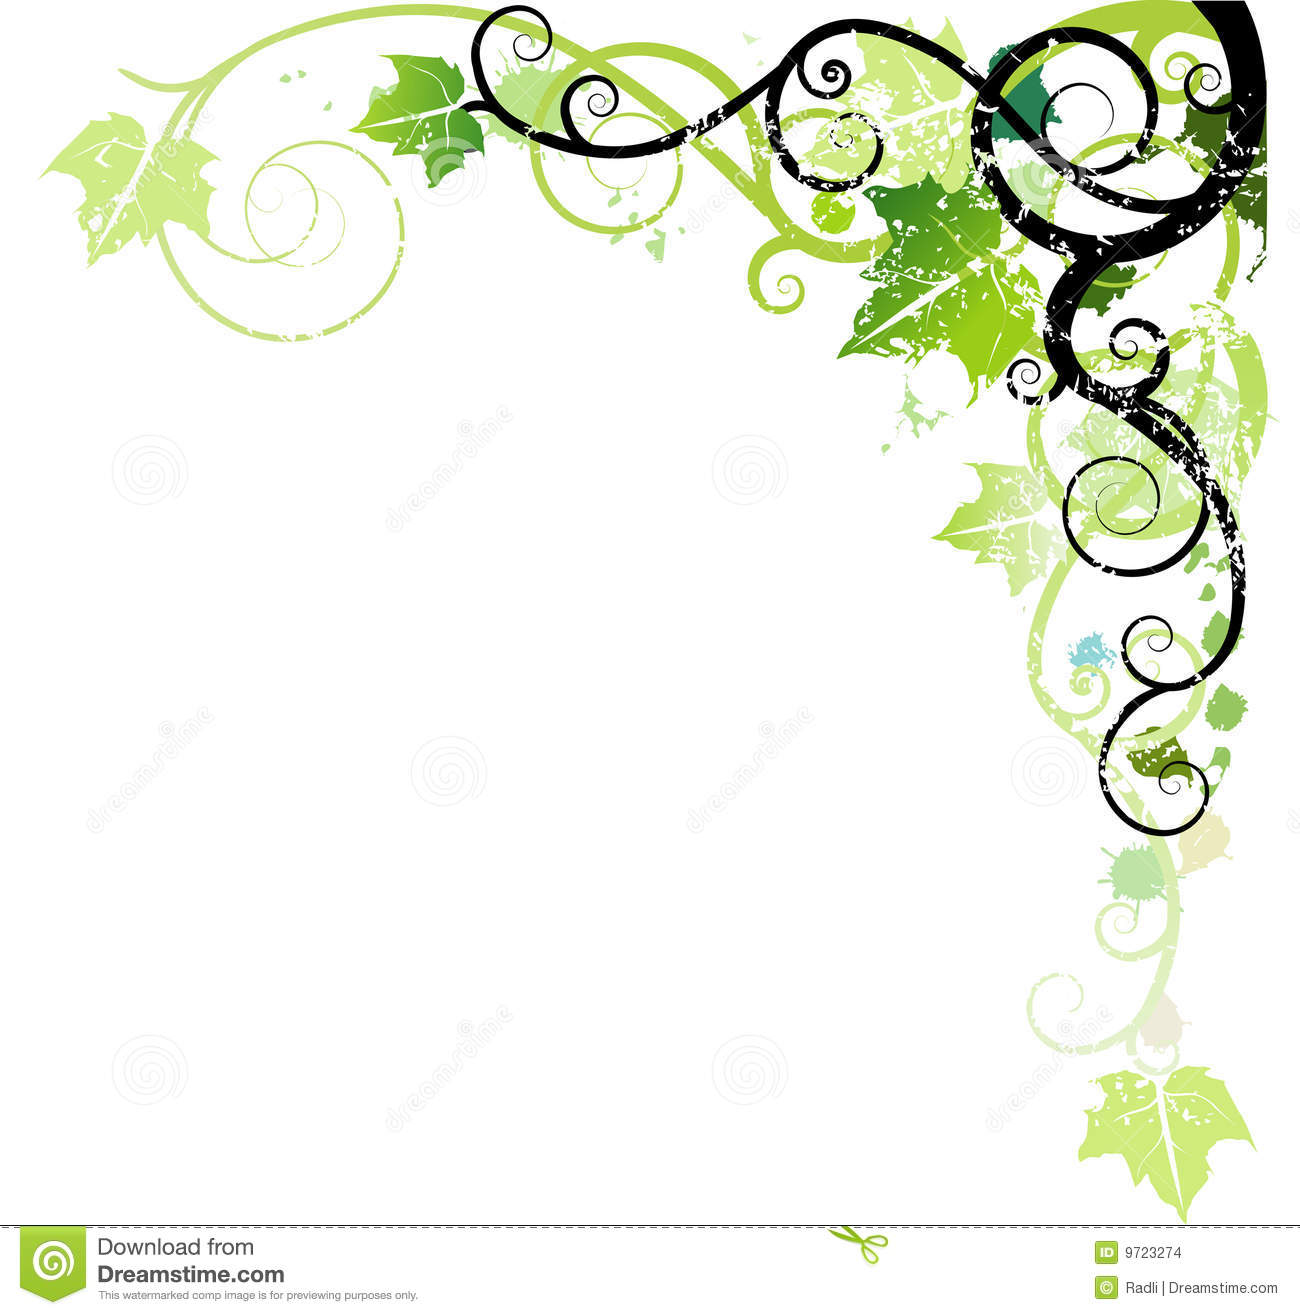 Green ornament stock vector. Image of decoration, banner